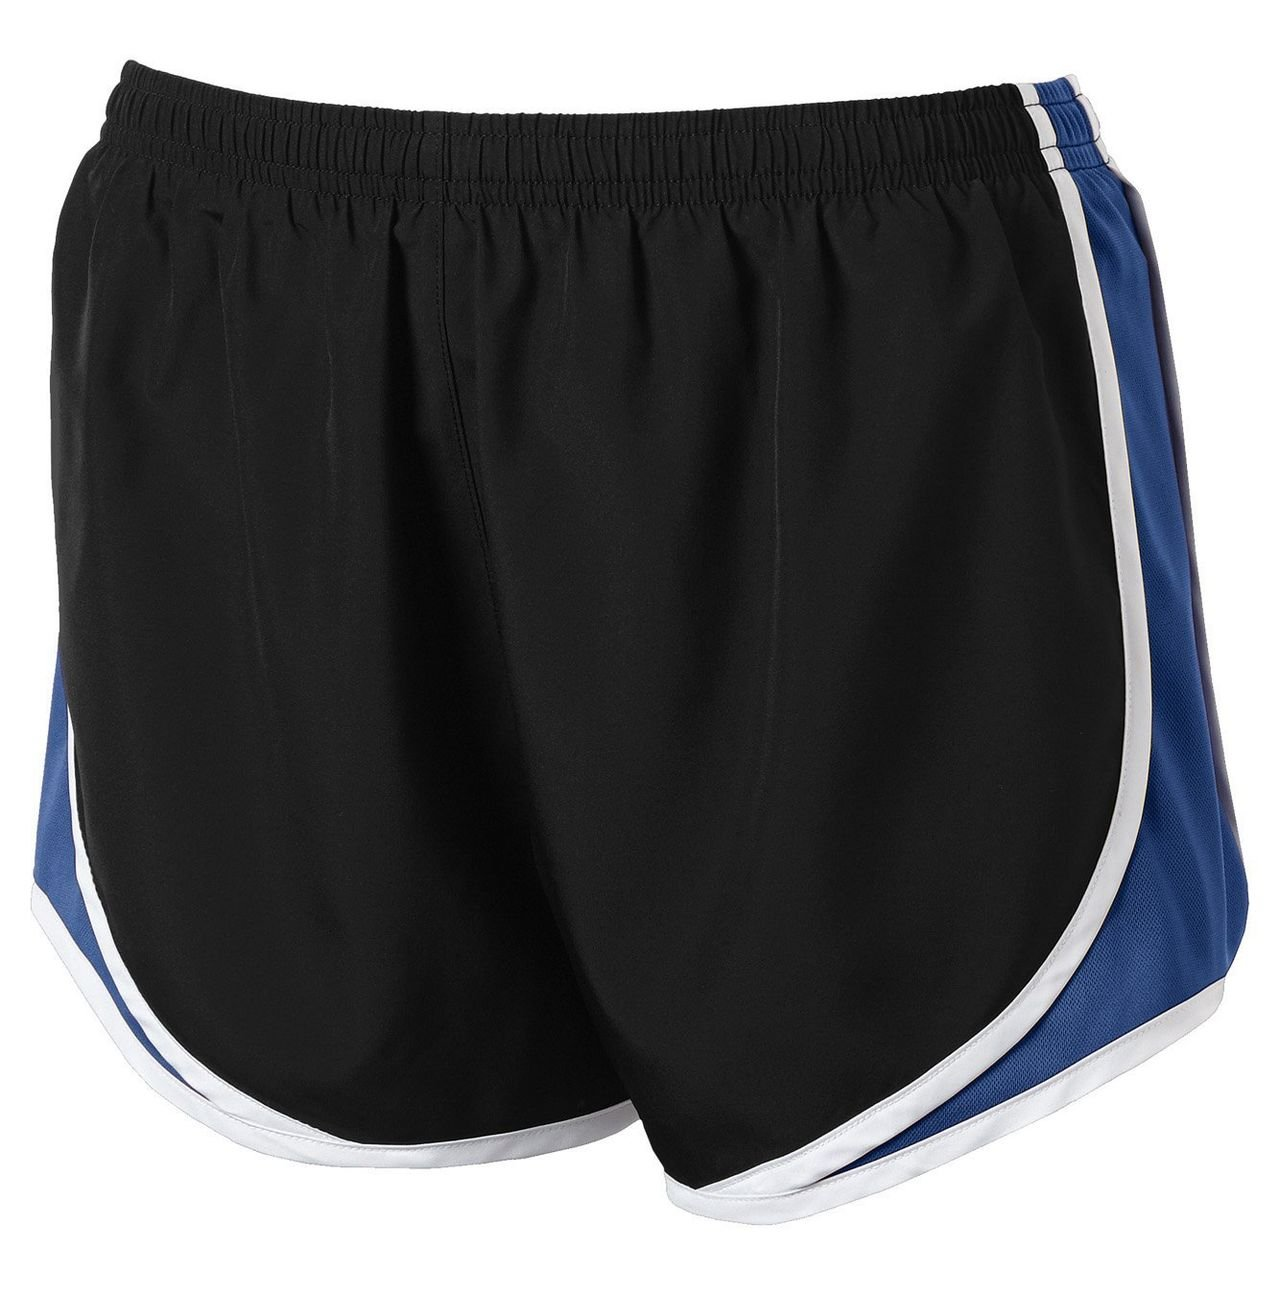 Clothe Co. Ladies Moisture Wicking Sport Running Shorts, Black/True Royal/White, XS by Clothe Co. (Image #1)